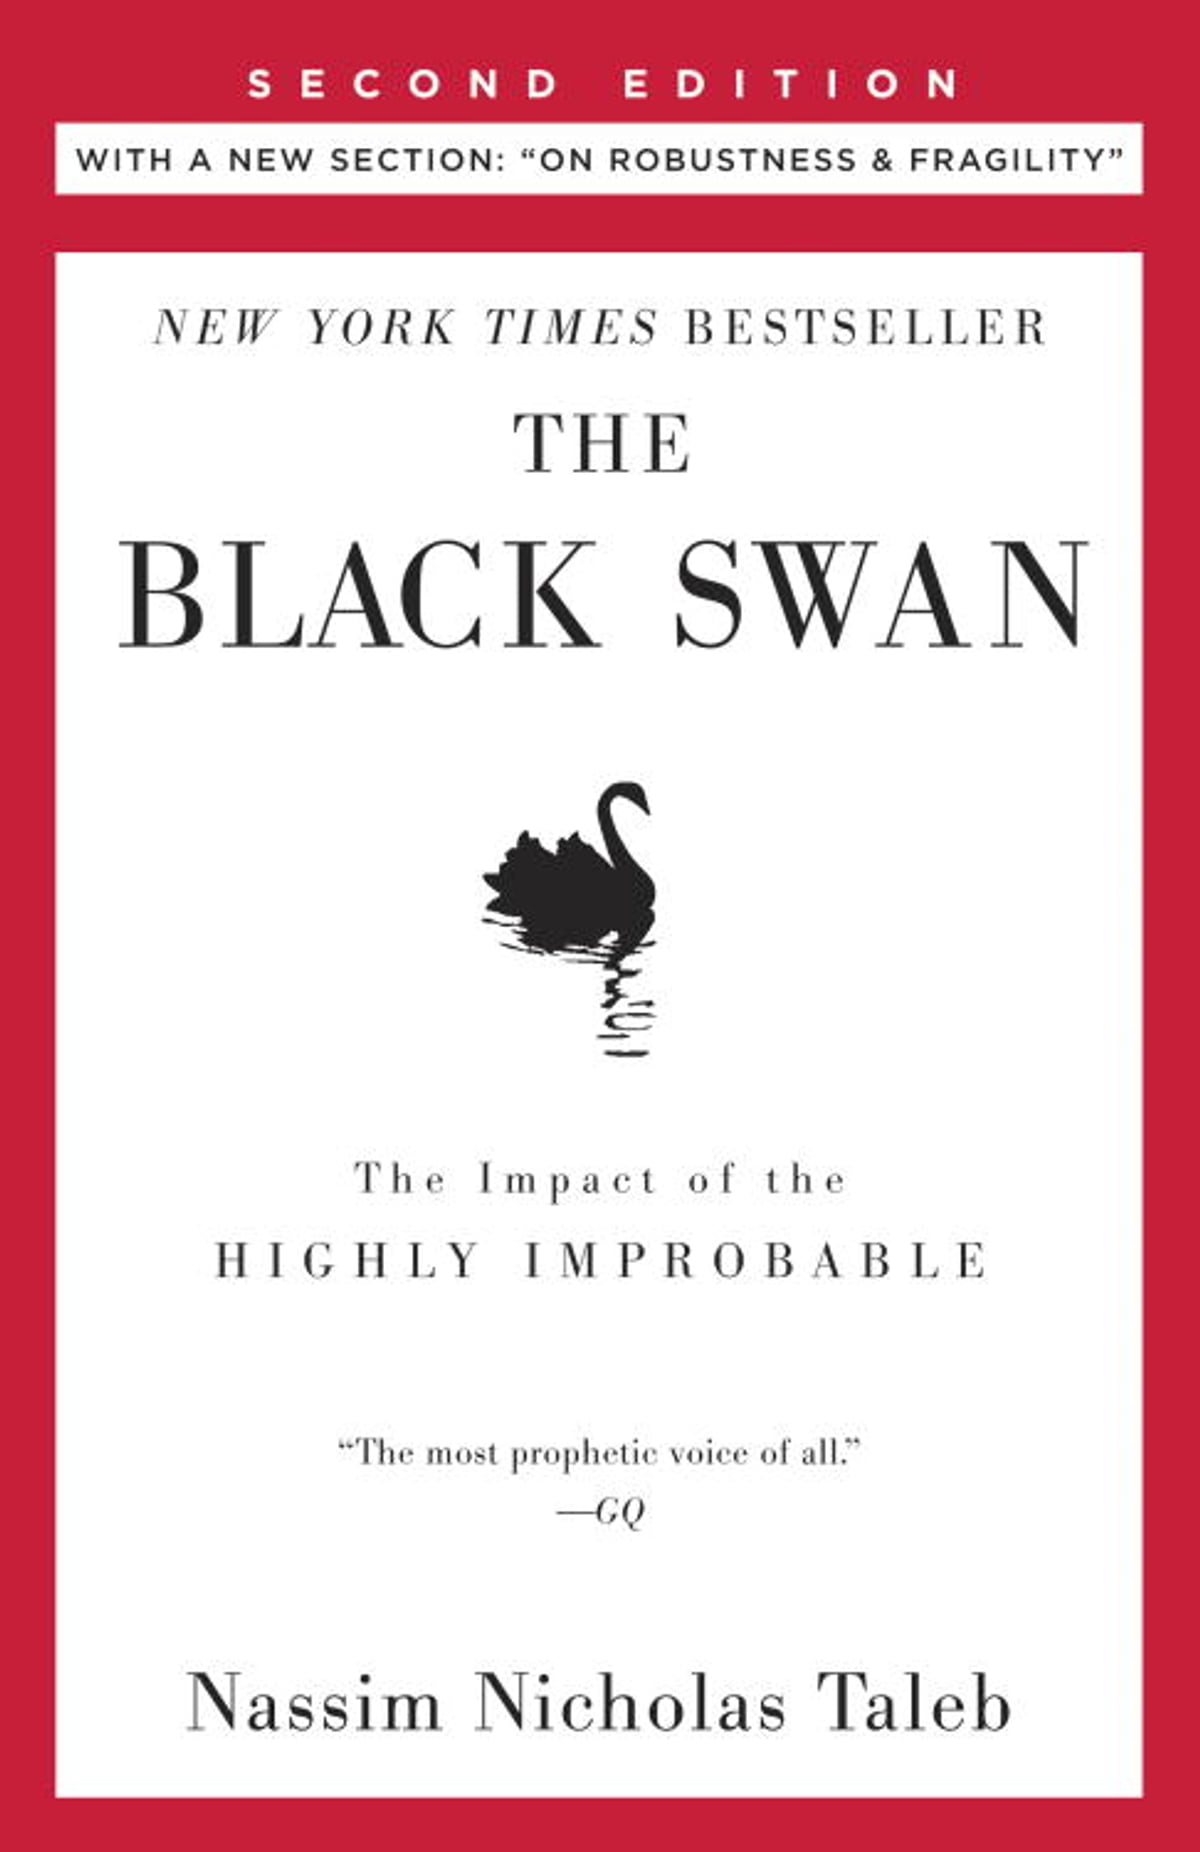 The Black Swan: Second Edition  The Impact Of The Highly Improbable  Fragility